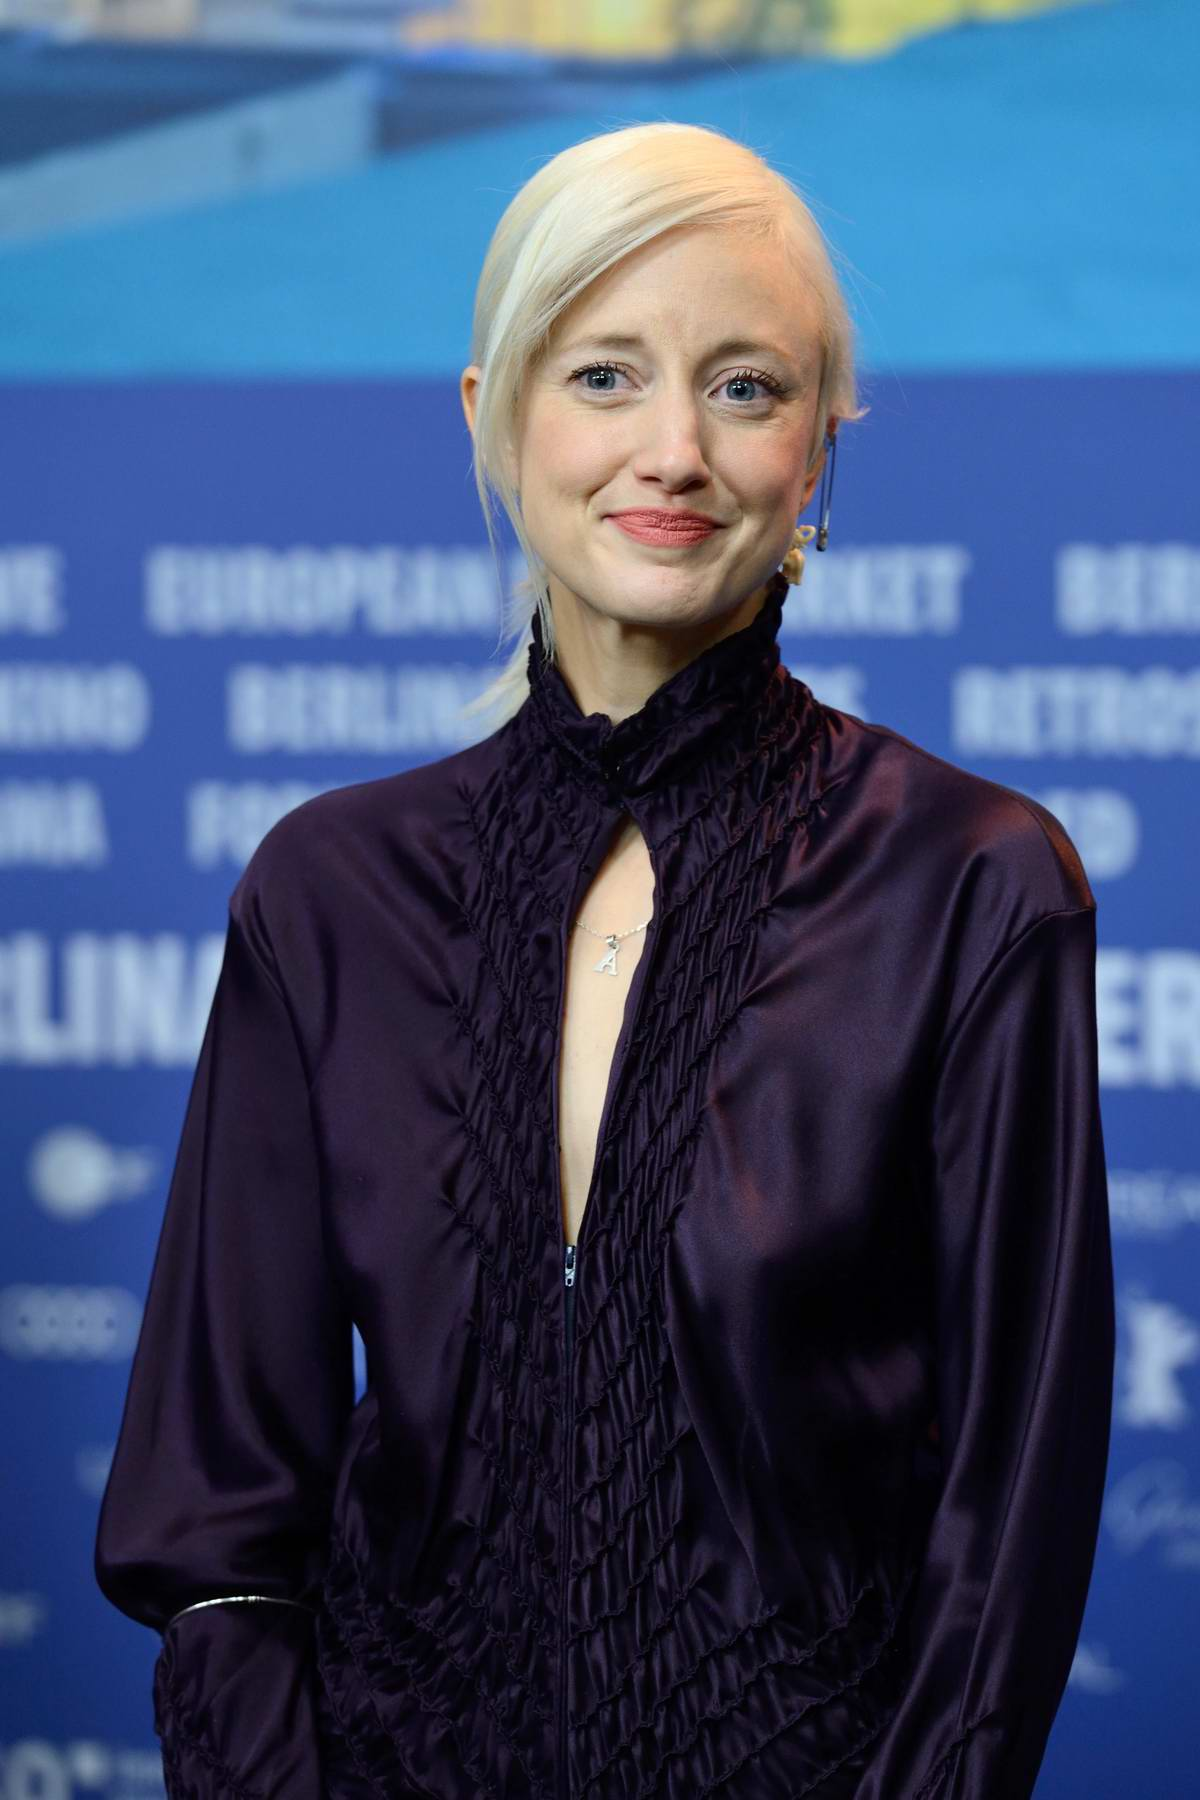 Andrea Riseborough attends 'The Kindness of Strangers' Press Conference at the 69th BIFF (Berlinale) in Berlin, Germany